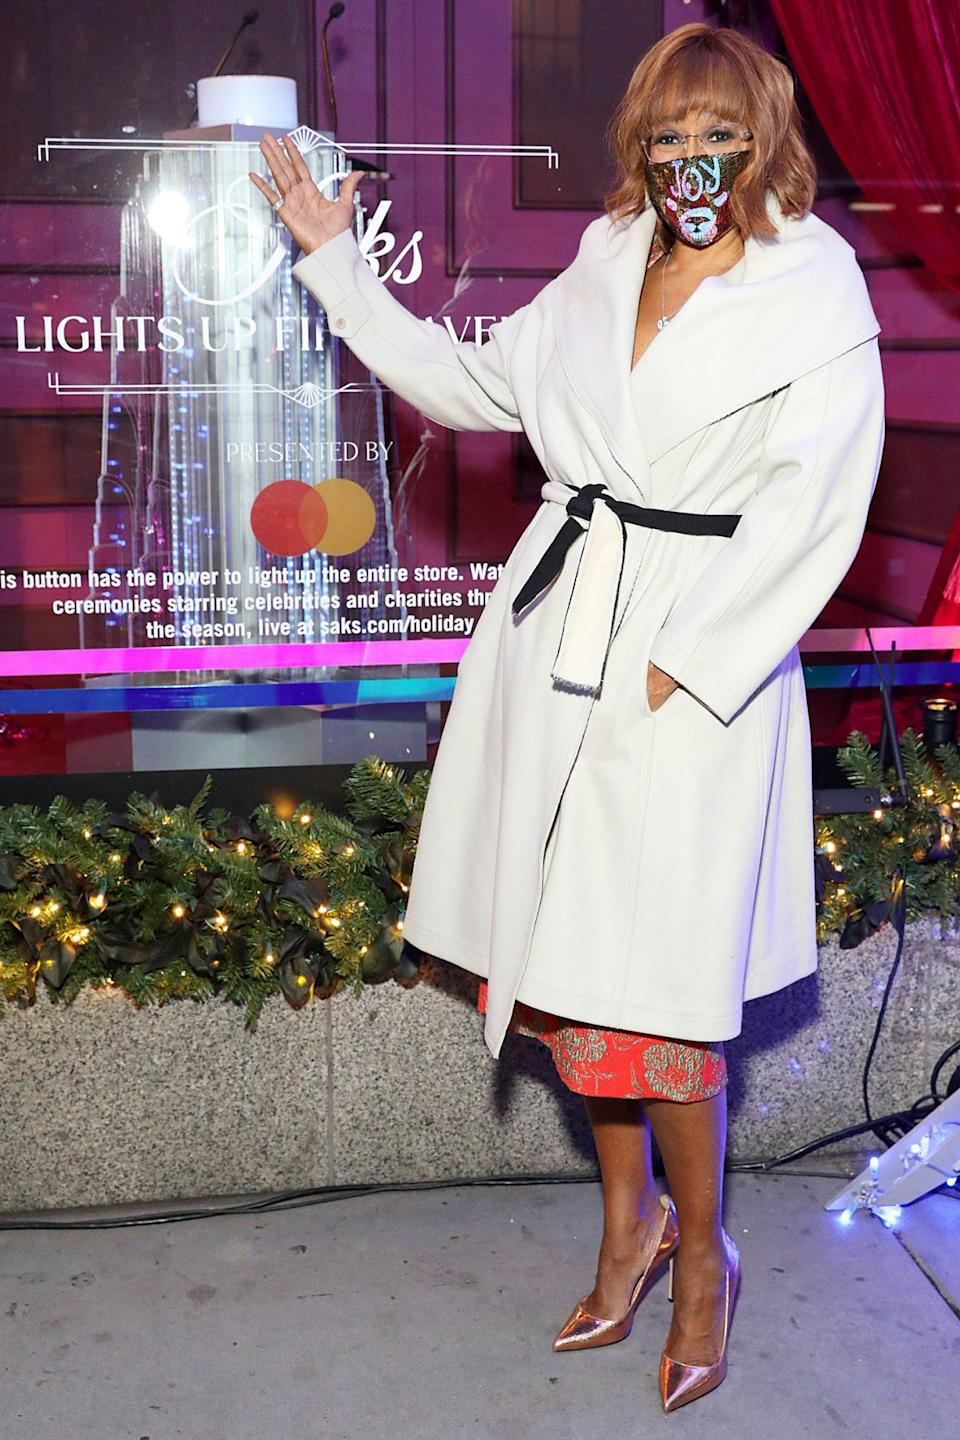 <p>Gayle King attends the Holidays at Saks Lights Up Fifth Avenue Ceremony on Wednesday in N.Y.C.</p>